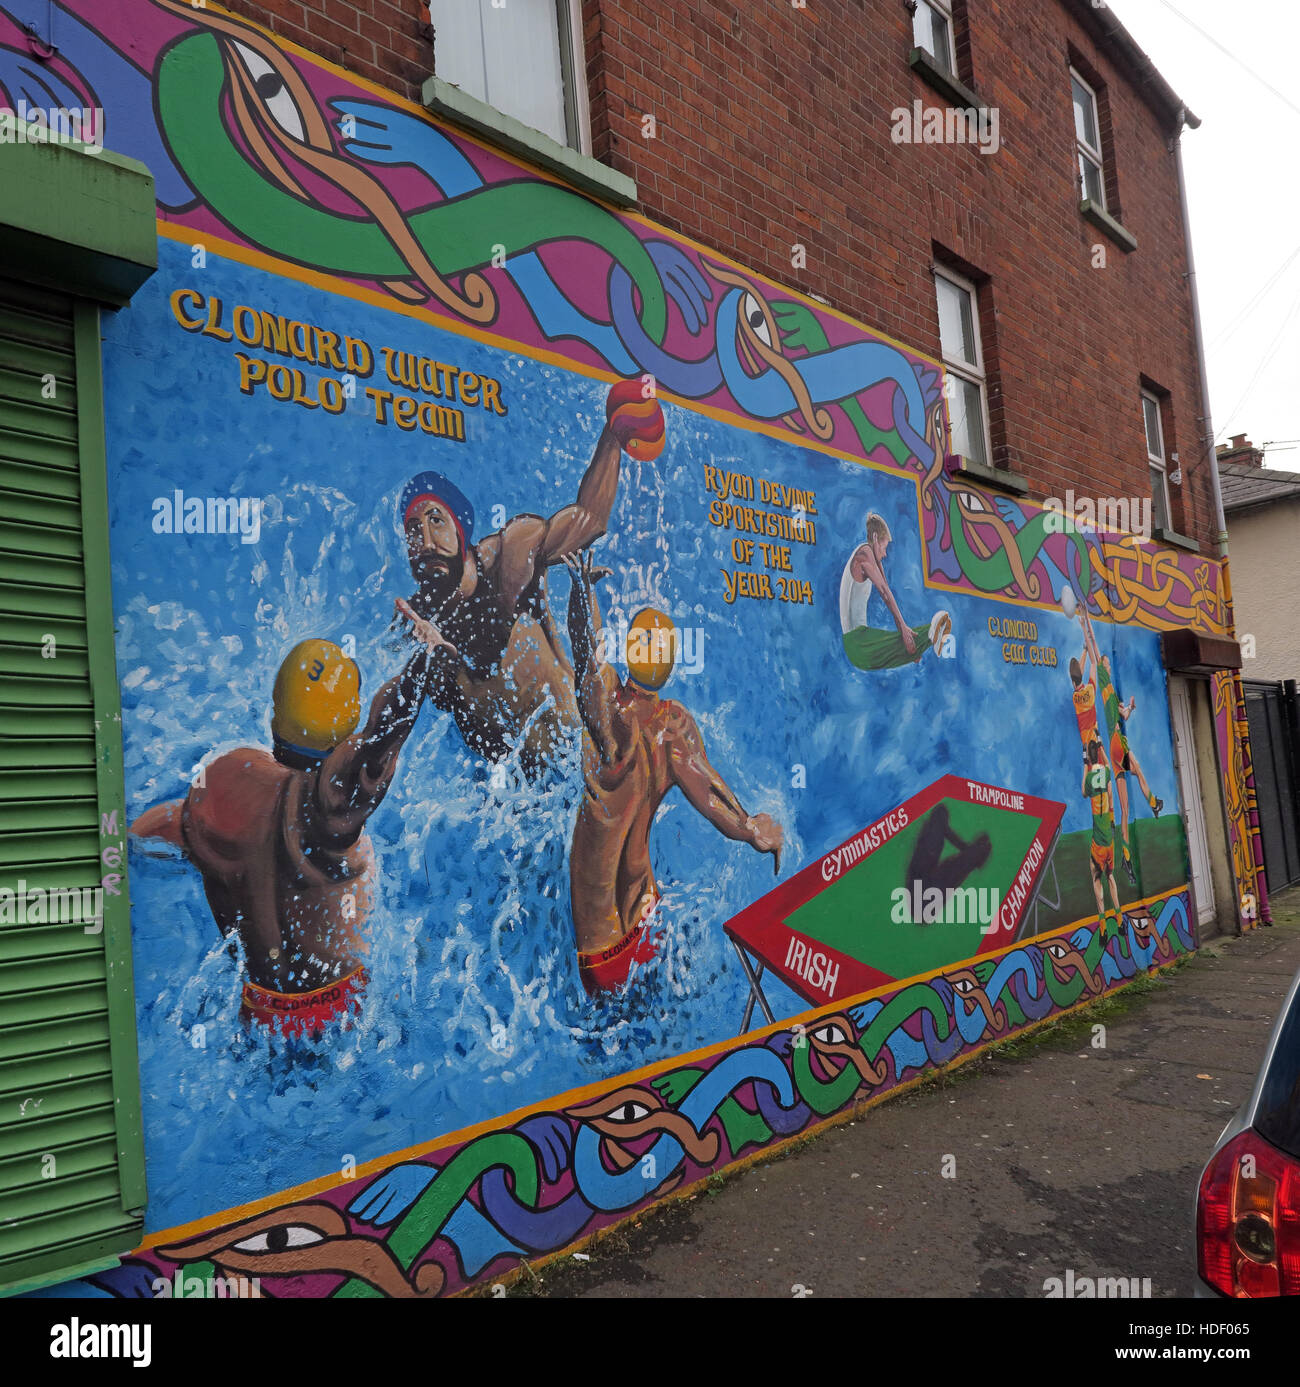 Belfast Falls Rd Republican Mural- Irish Sport, Clonard Water Polo Team - Stock Image